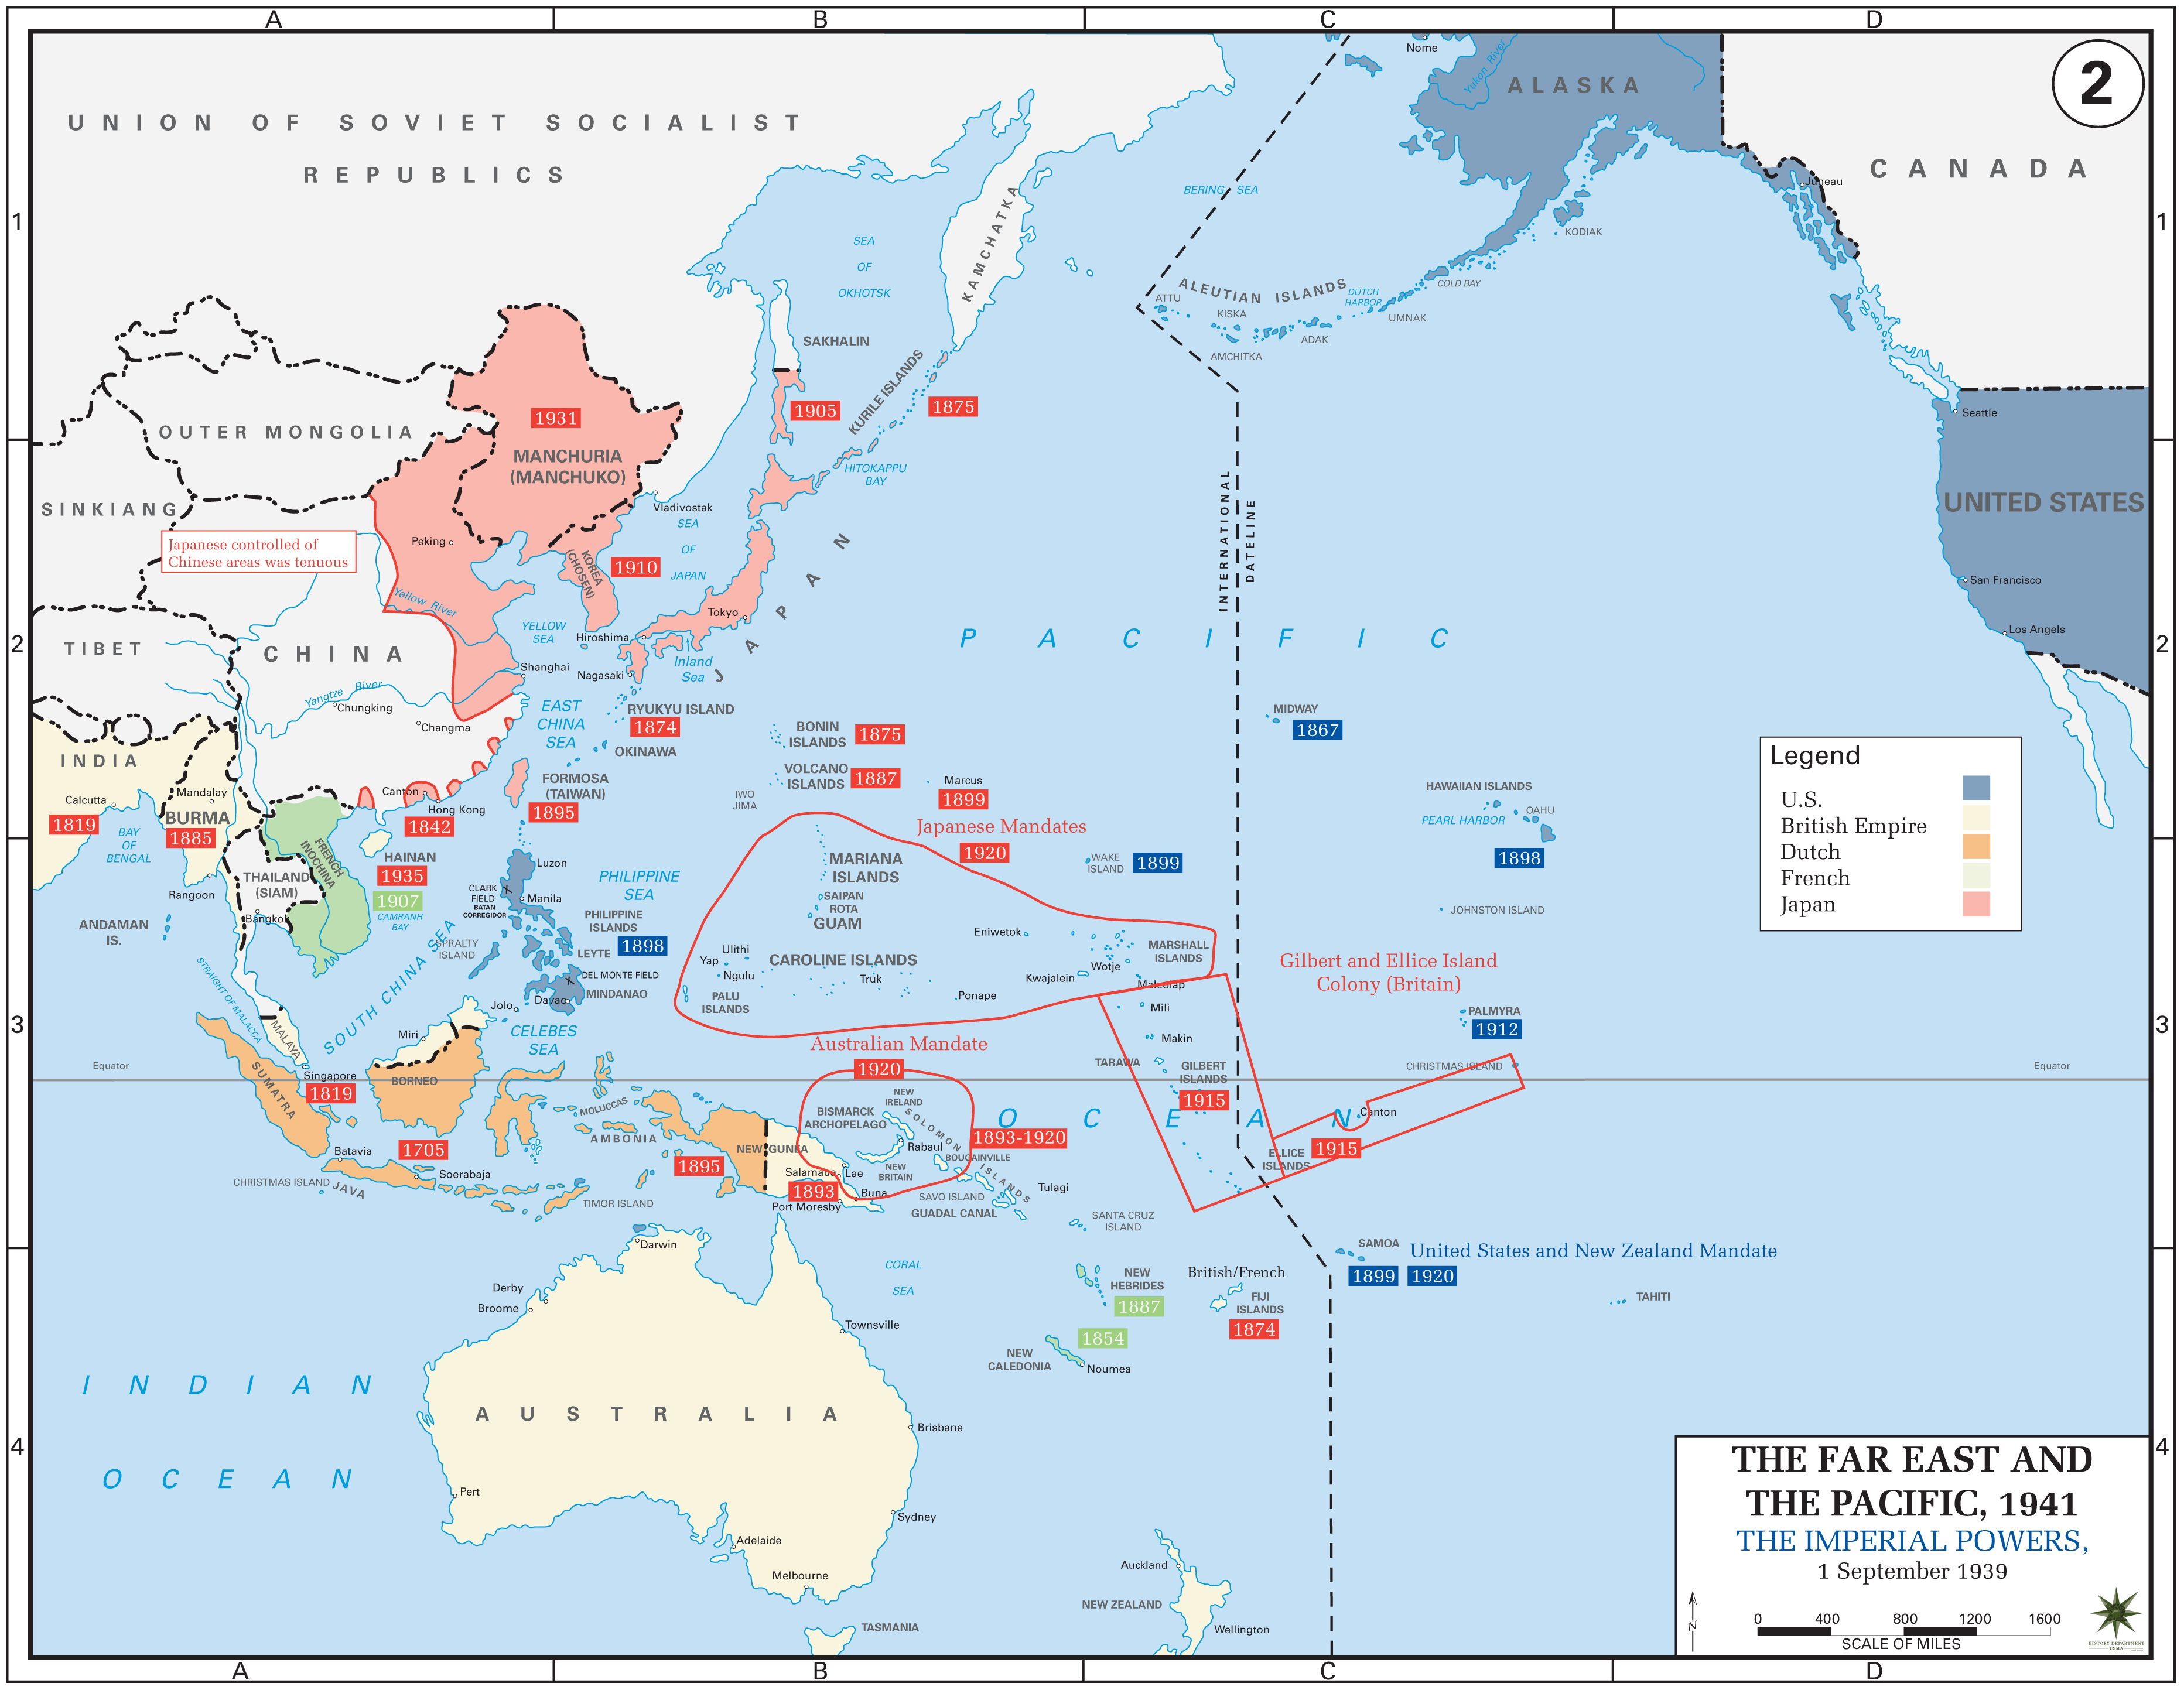 Pin by ryon nance on maps pinterest explore world war ii september and more gumiabroncs Gallery